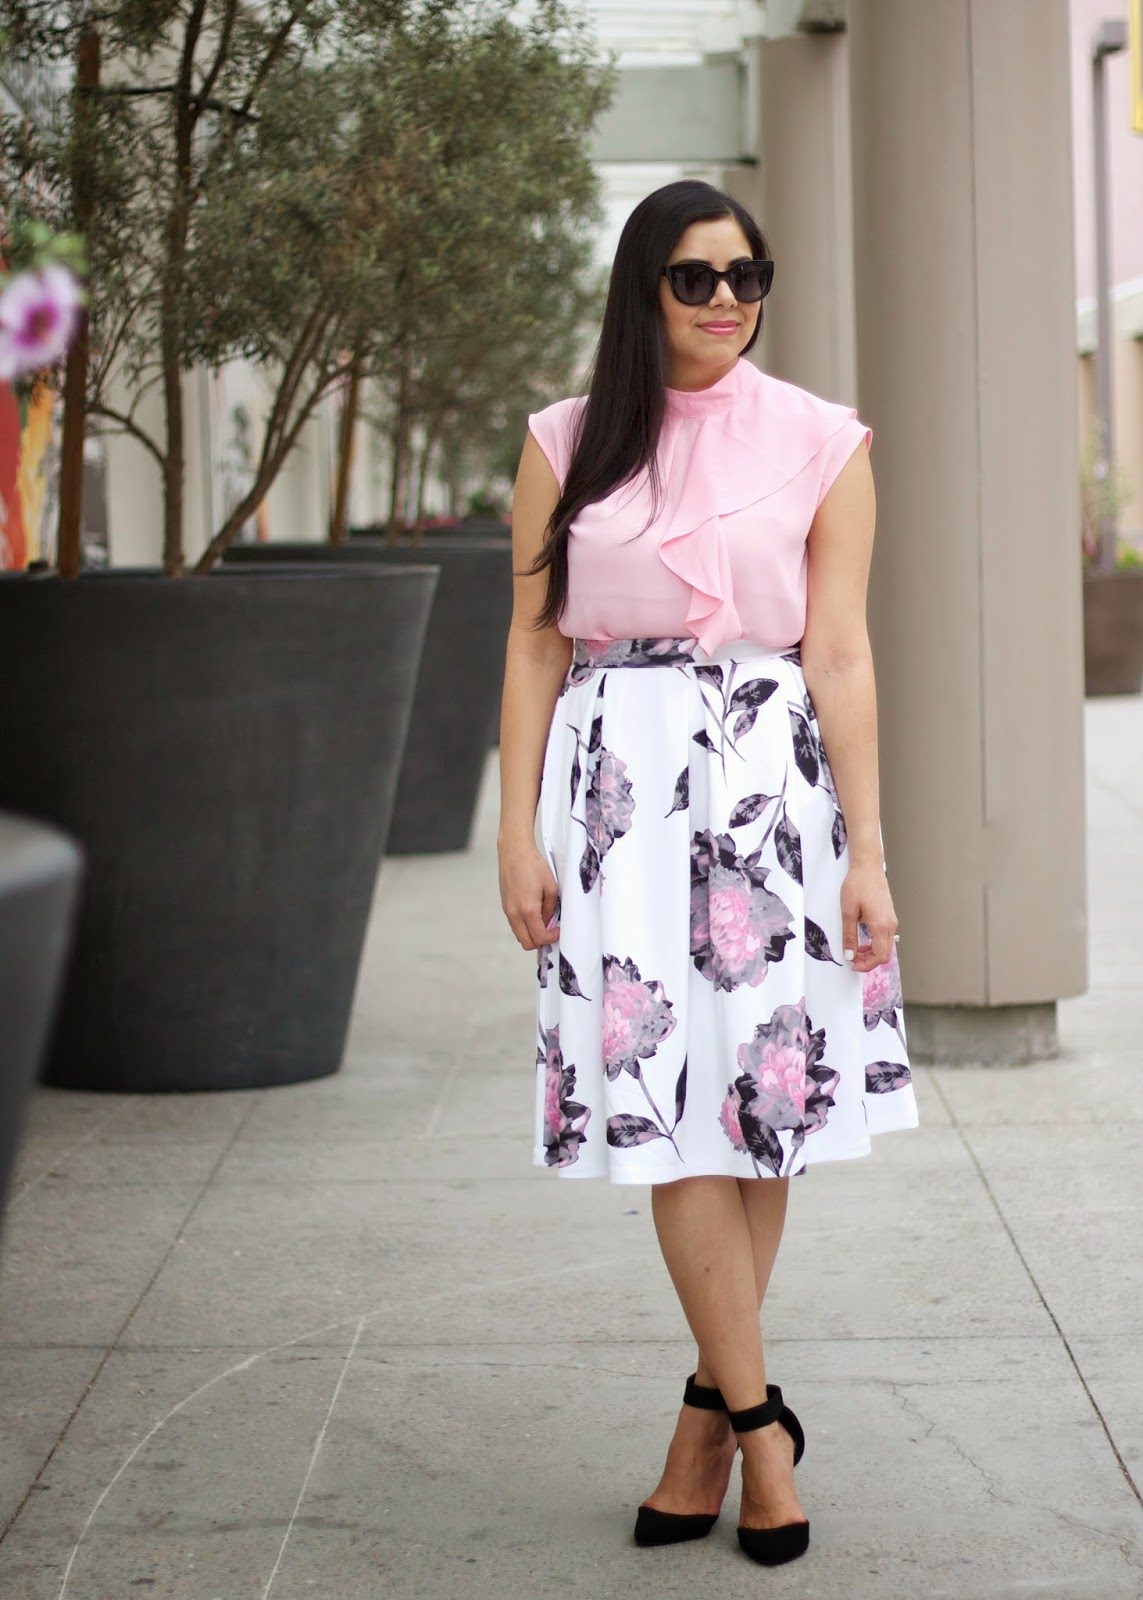 Westfield Mission Valley VIPink Brunch, New York & Co outfit, Westfield Mission Valley blogger, style blogger in san diego, fashion blogger in san diego